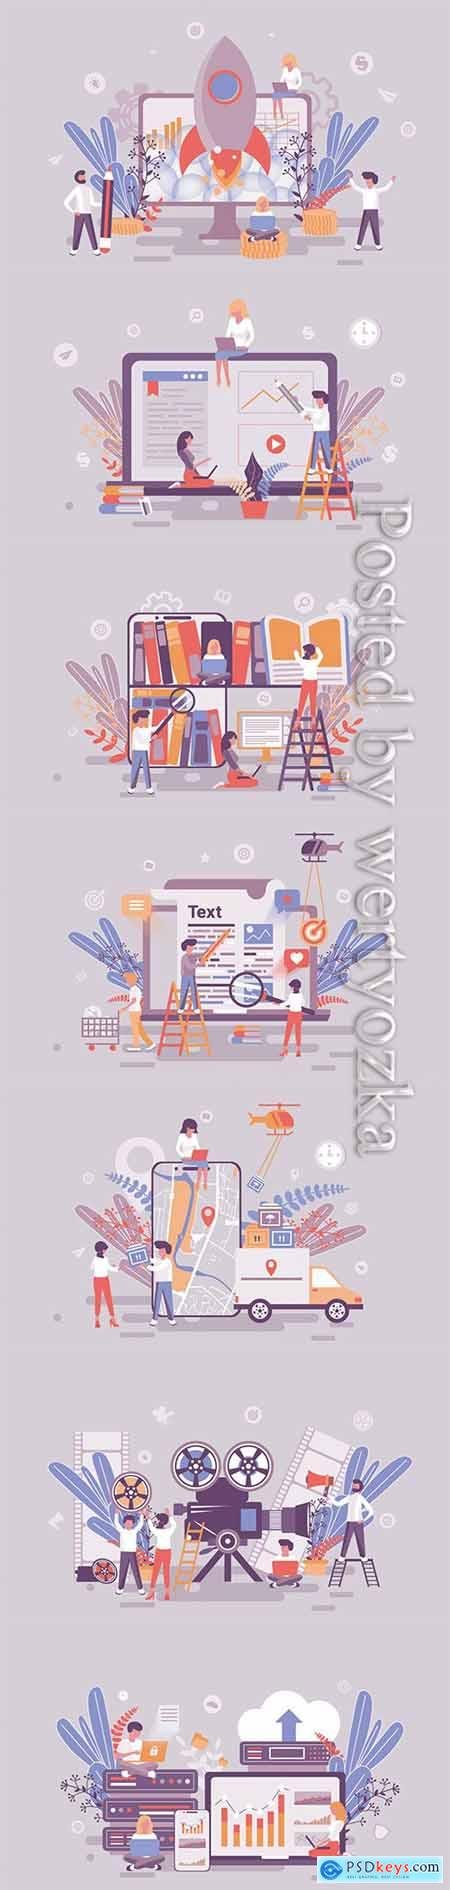 Flat isometric vector 3D concept illustration # 107